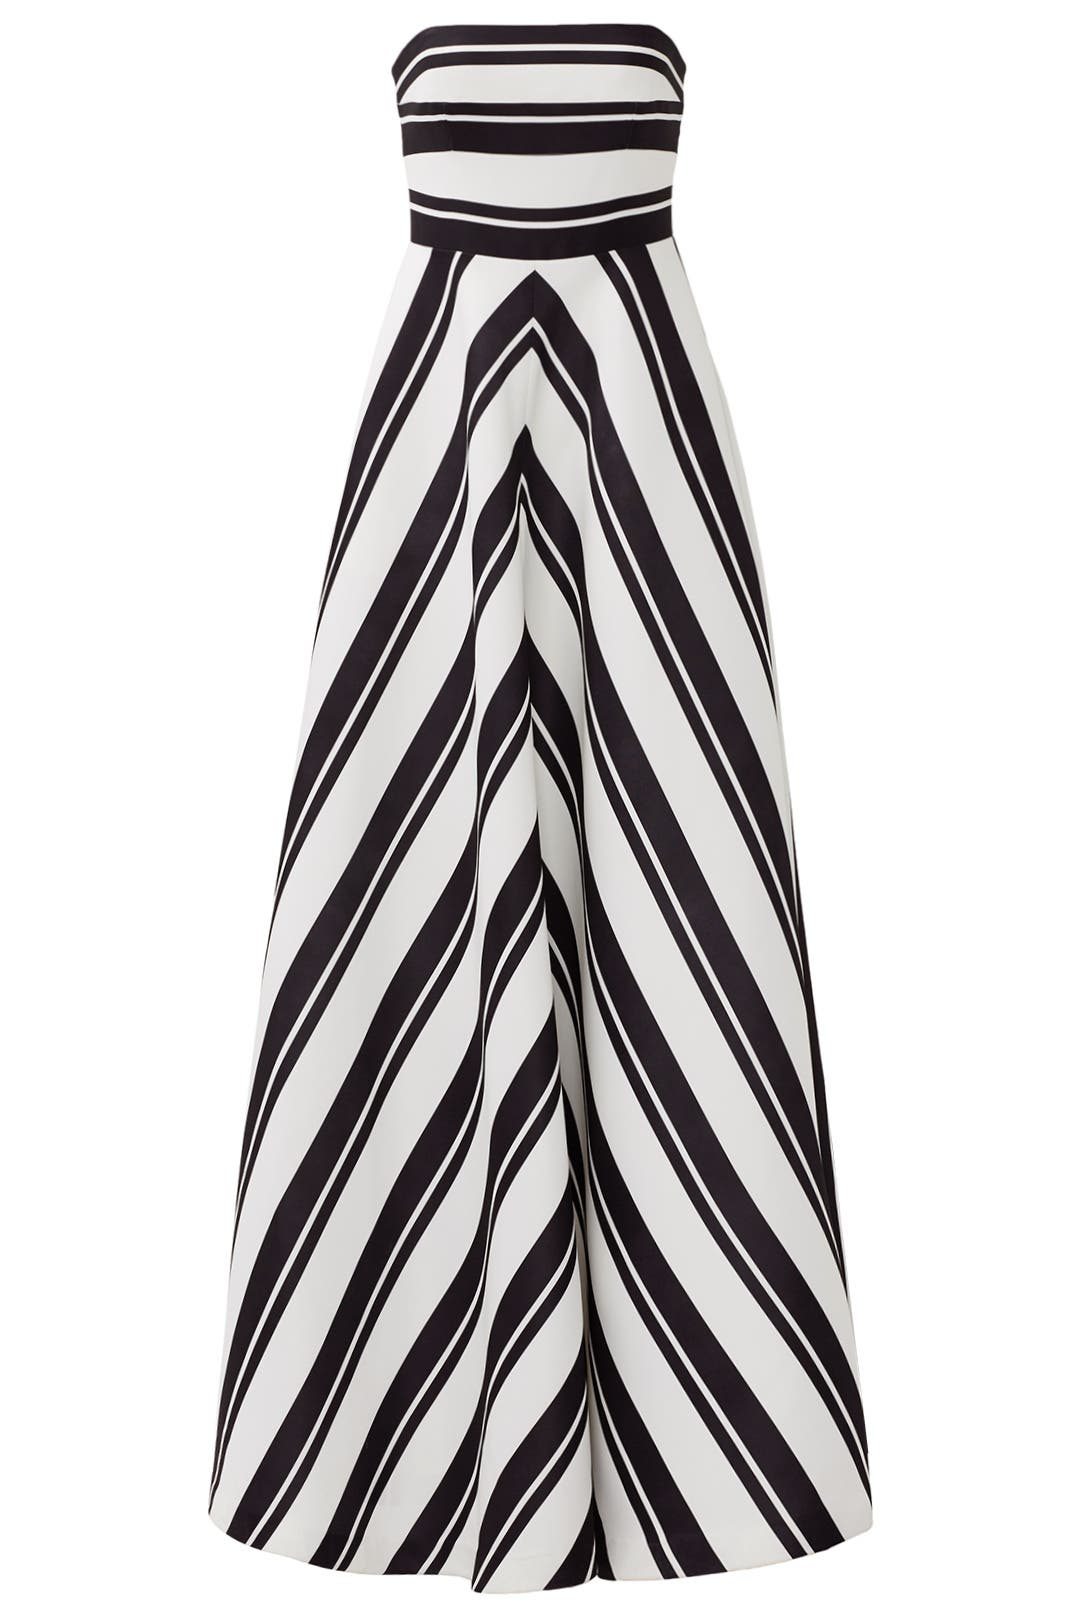 Barber Stripe Gown by Halston Heritage for $76 | Rent the Runway